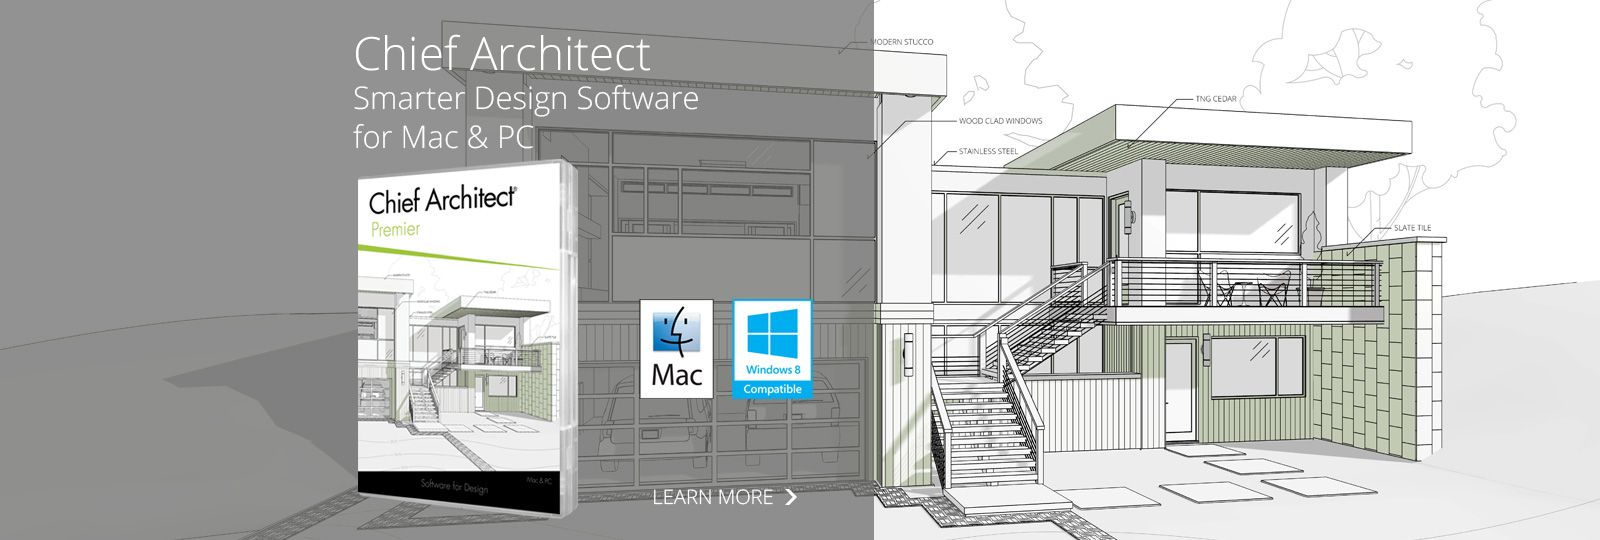 Chief Architect Professional 3d Architectural Home Design Software Automated Building Tools